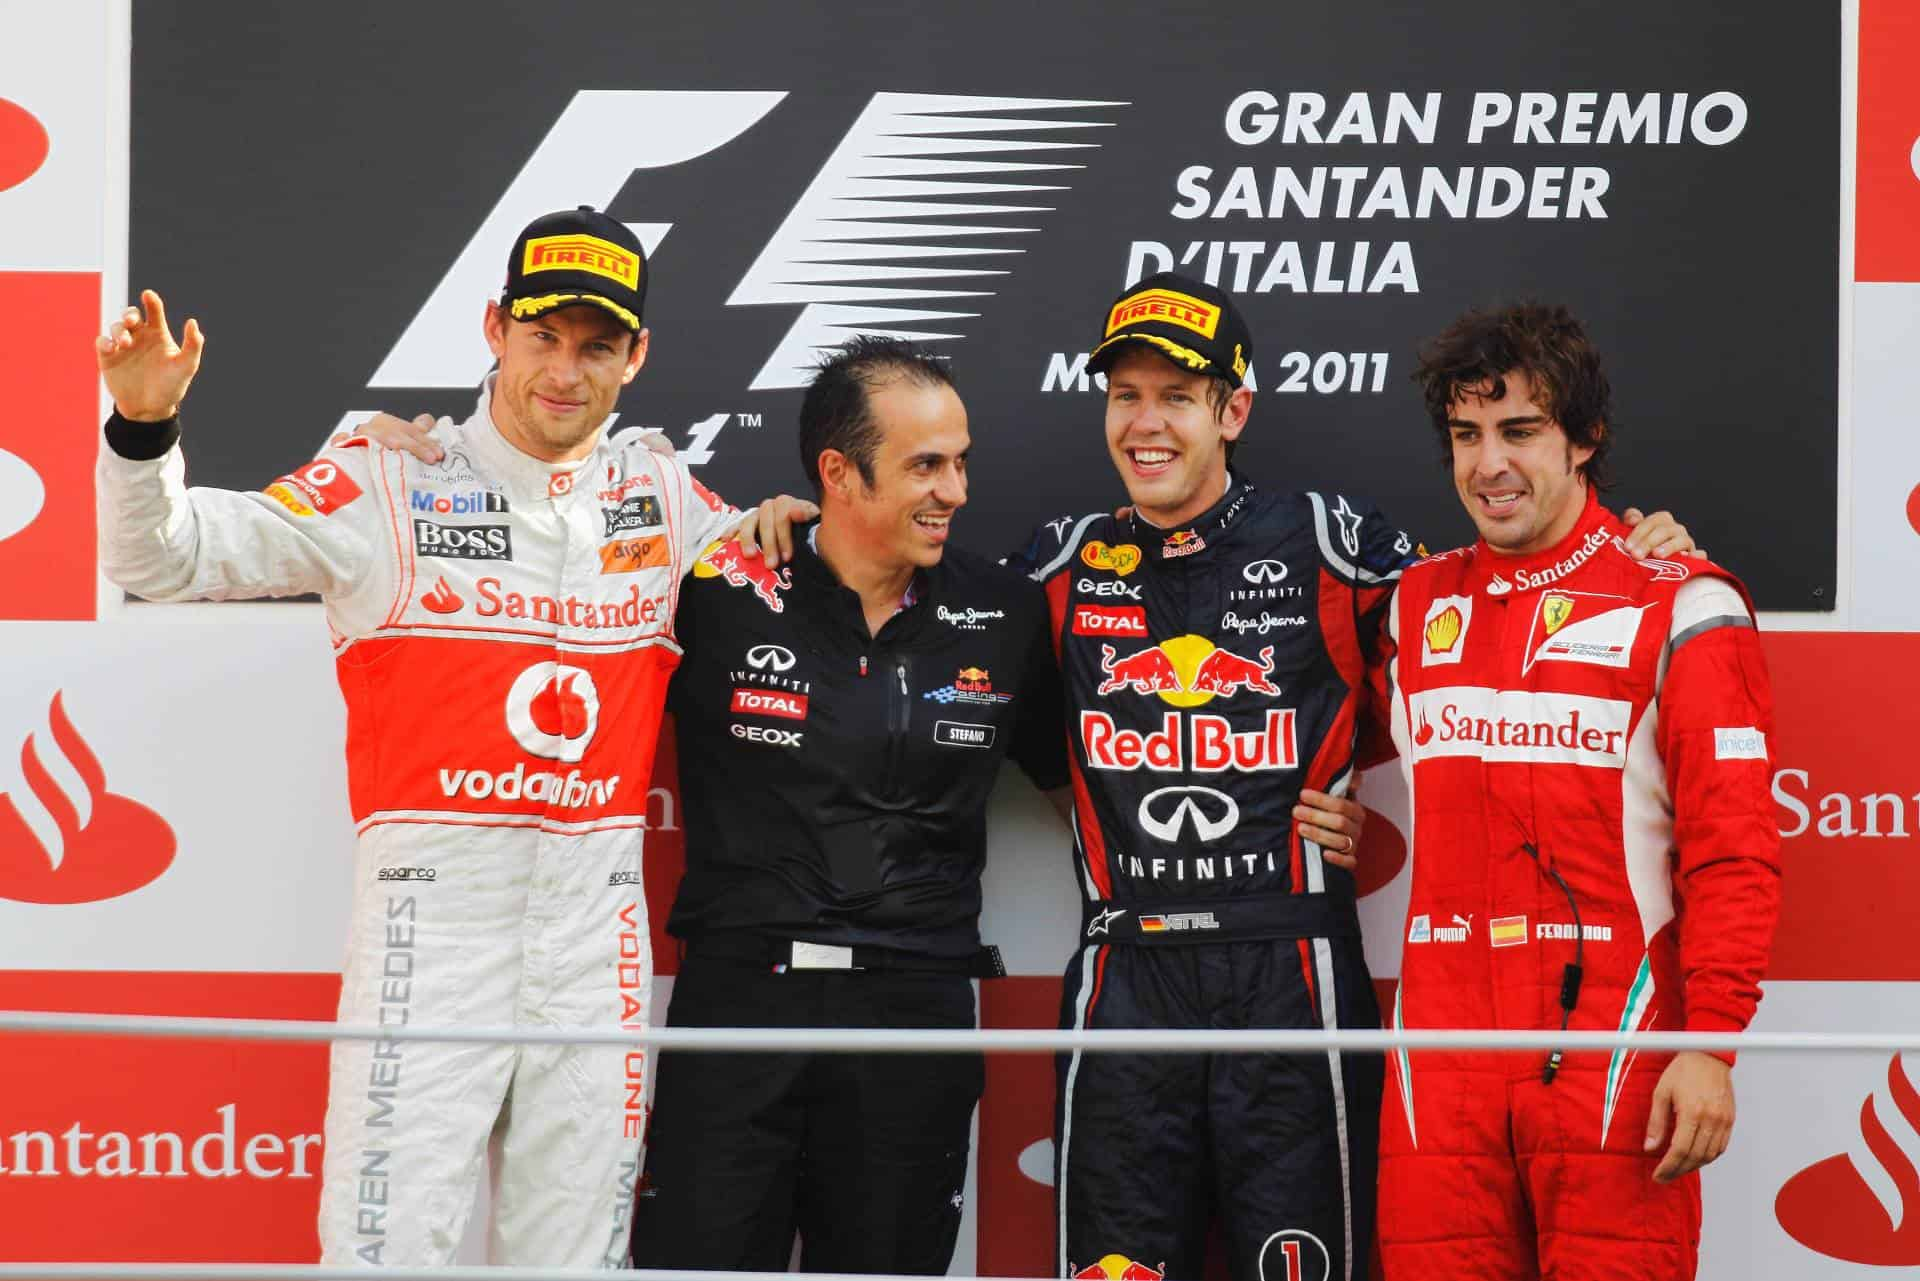 Italian GP F1 2011 Monza podium Photo Red Bull